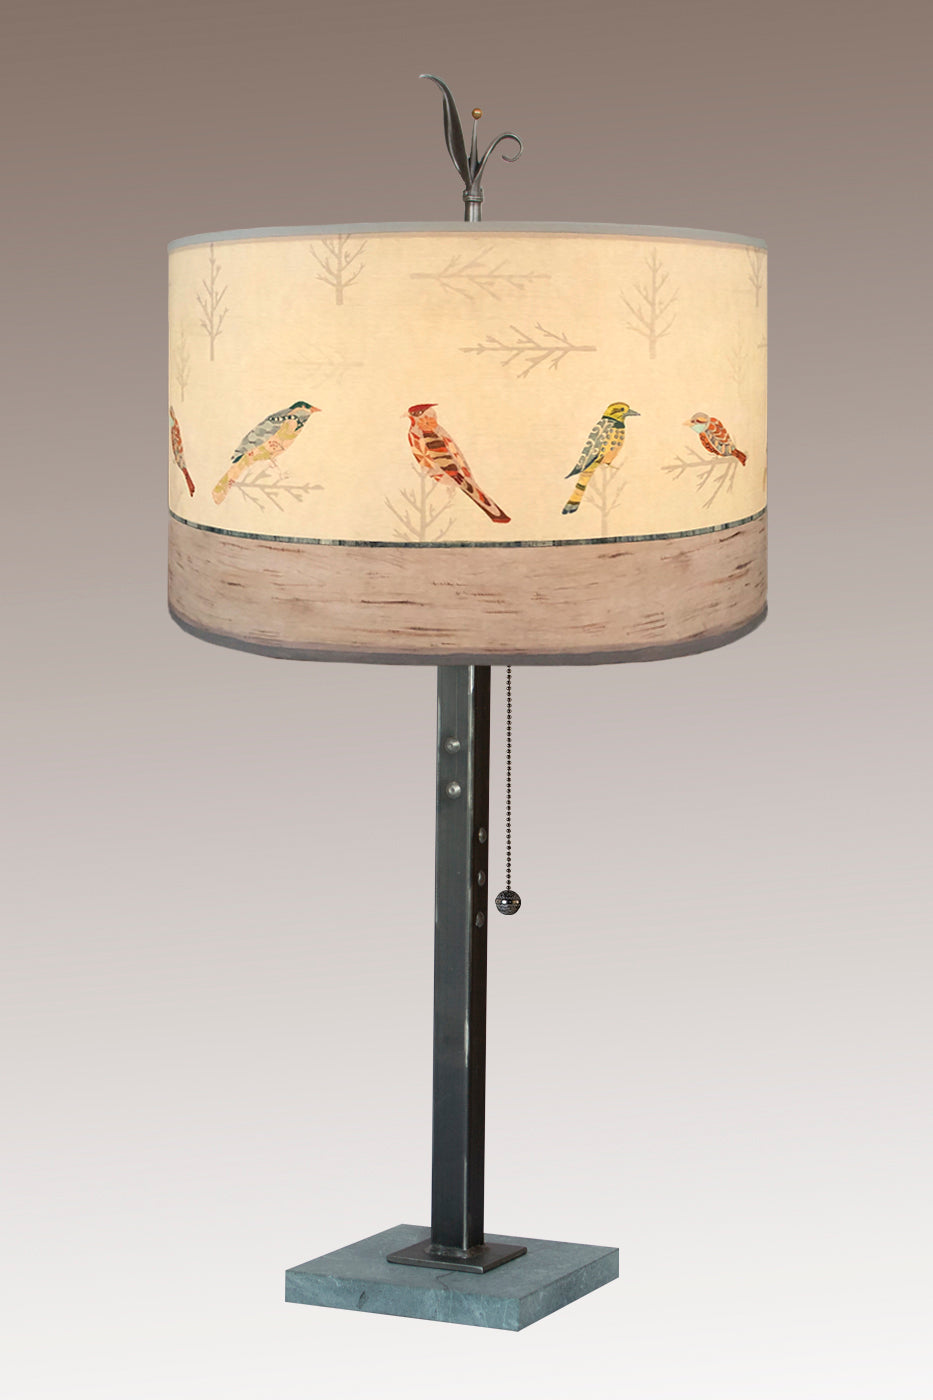 Steel Table Lamp on Marble with Large Drum Shade in Bird Friends